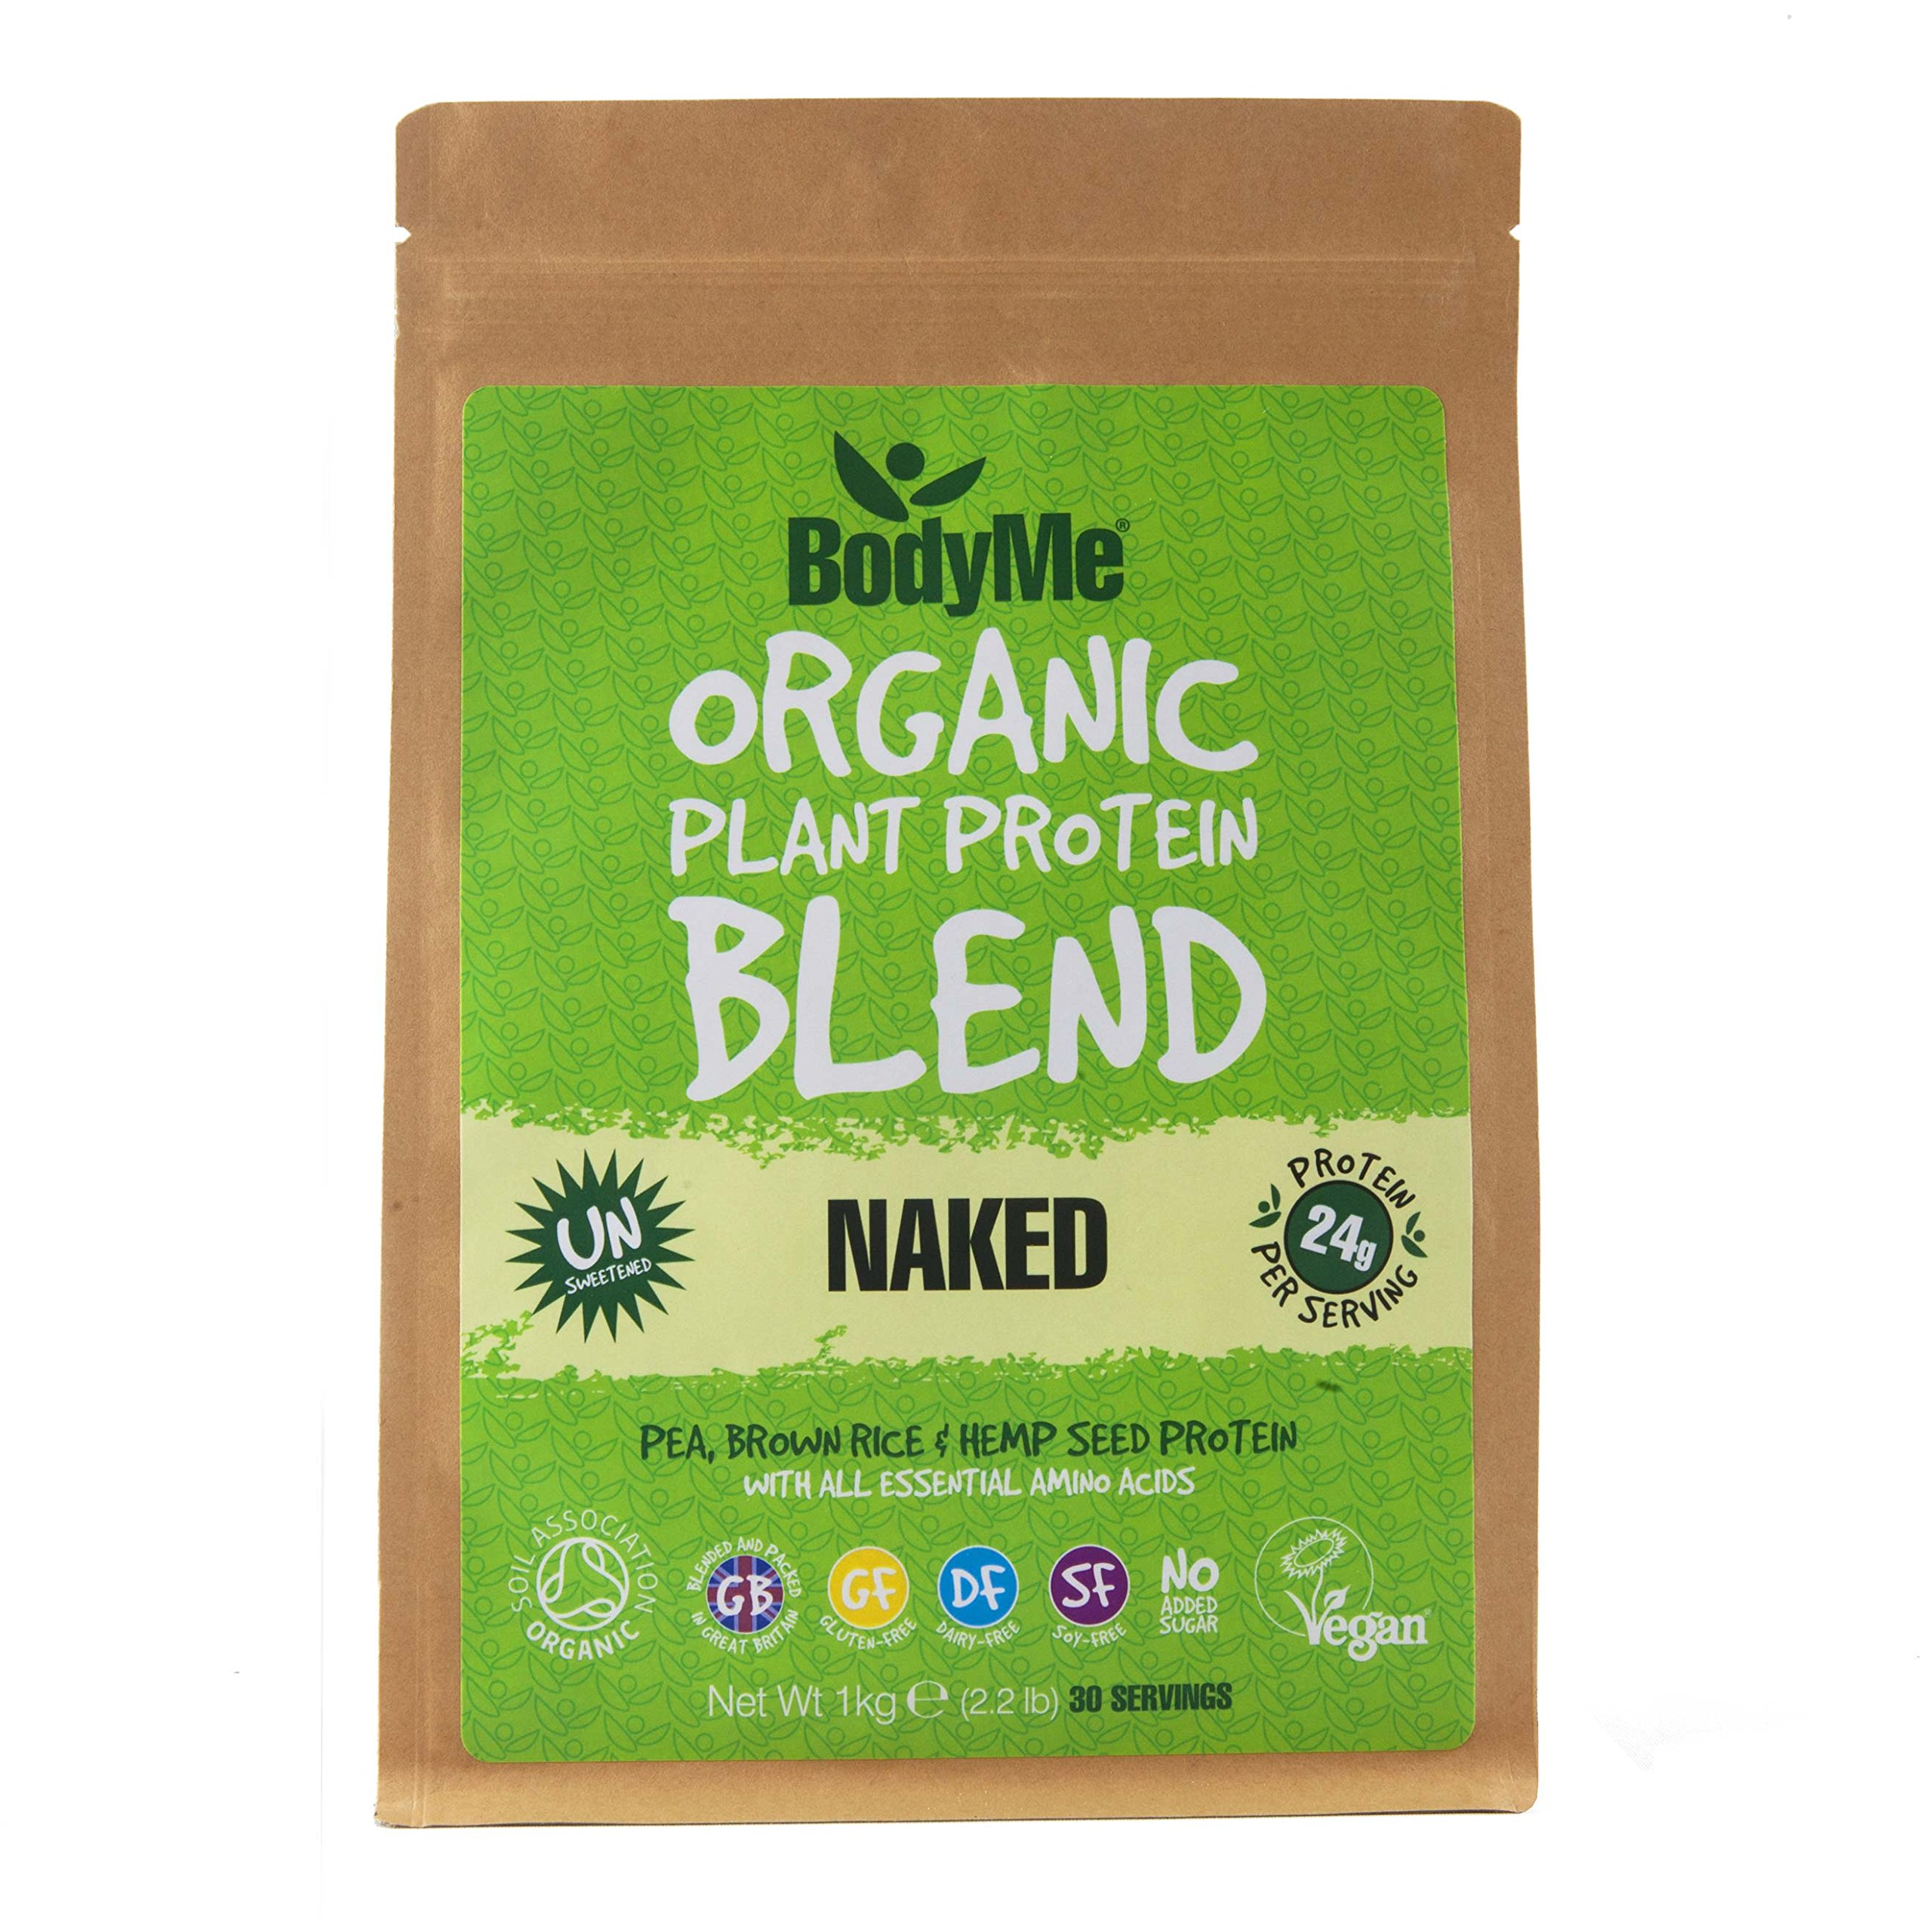 BodyMe Organic Vegan Protein Powder Blend | Naked Natural | 1kg | UNSWEETENED | Low Carb | with 3 Plant Based Vegan…